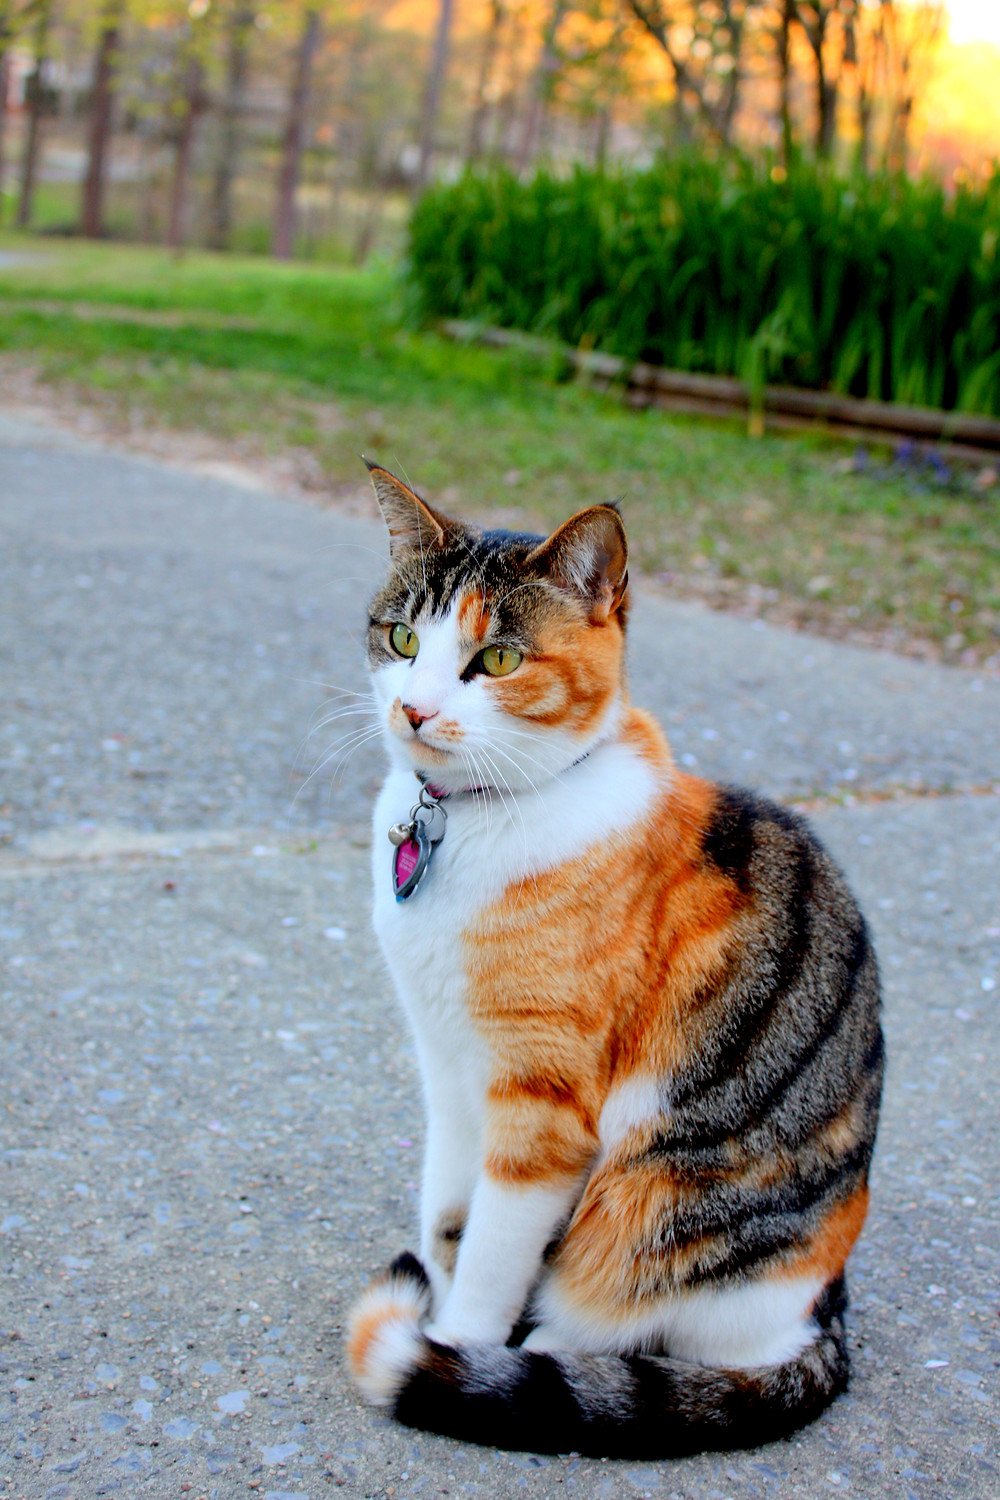 Nala the Kitty sitting in the driveway during the sunrise